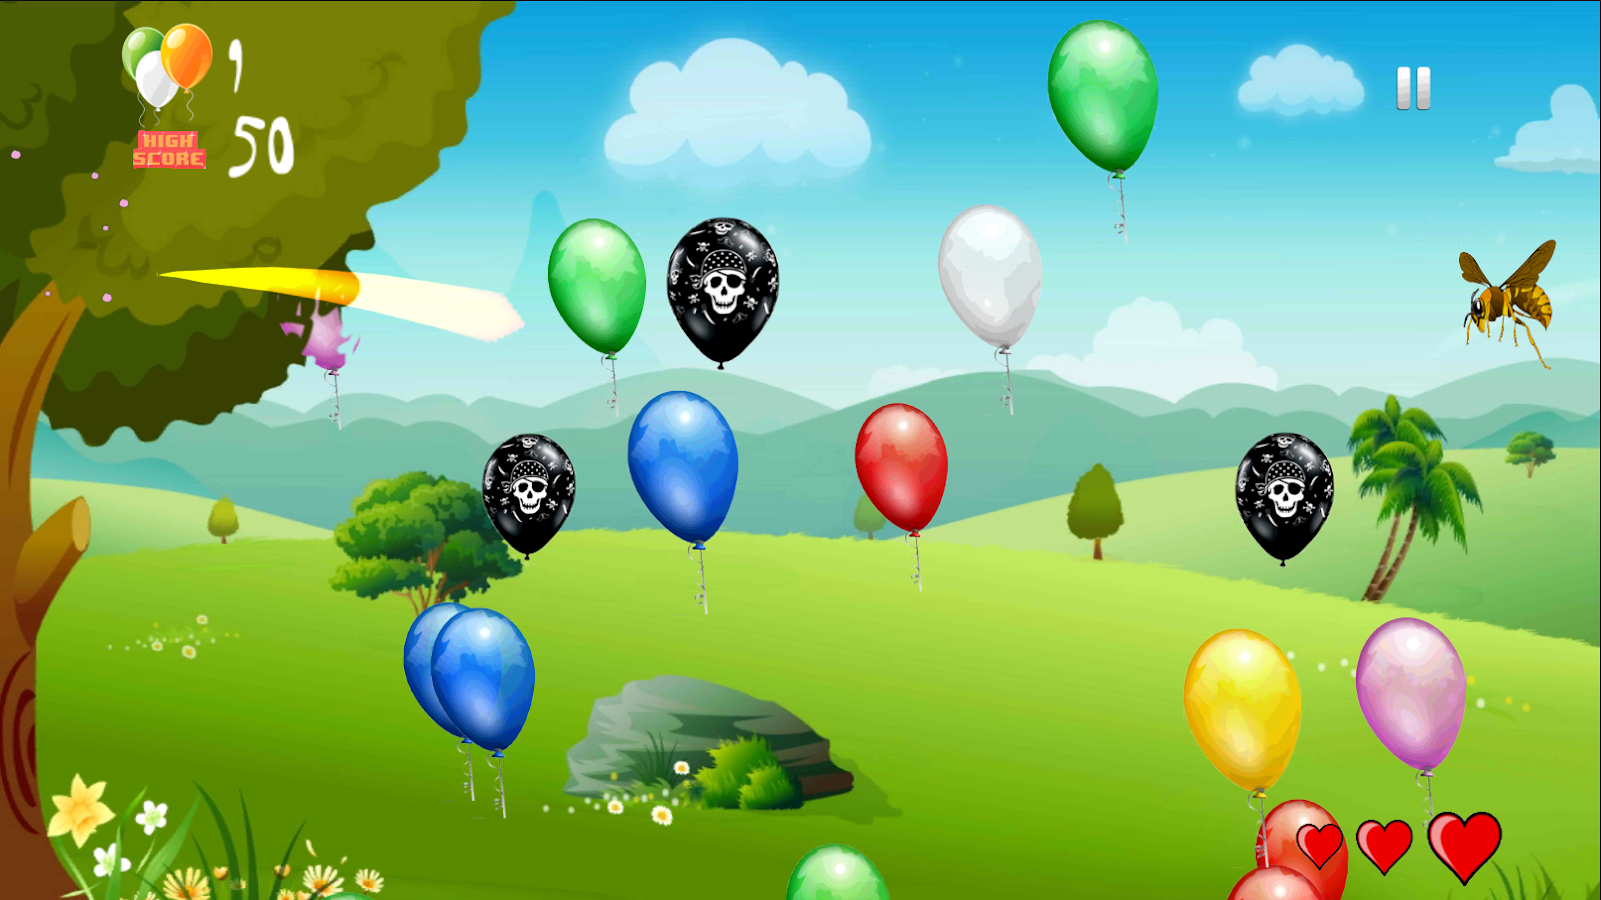 Balloon slicer free 2014 android apps on google play for Free balloon games